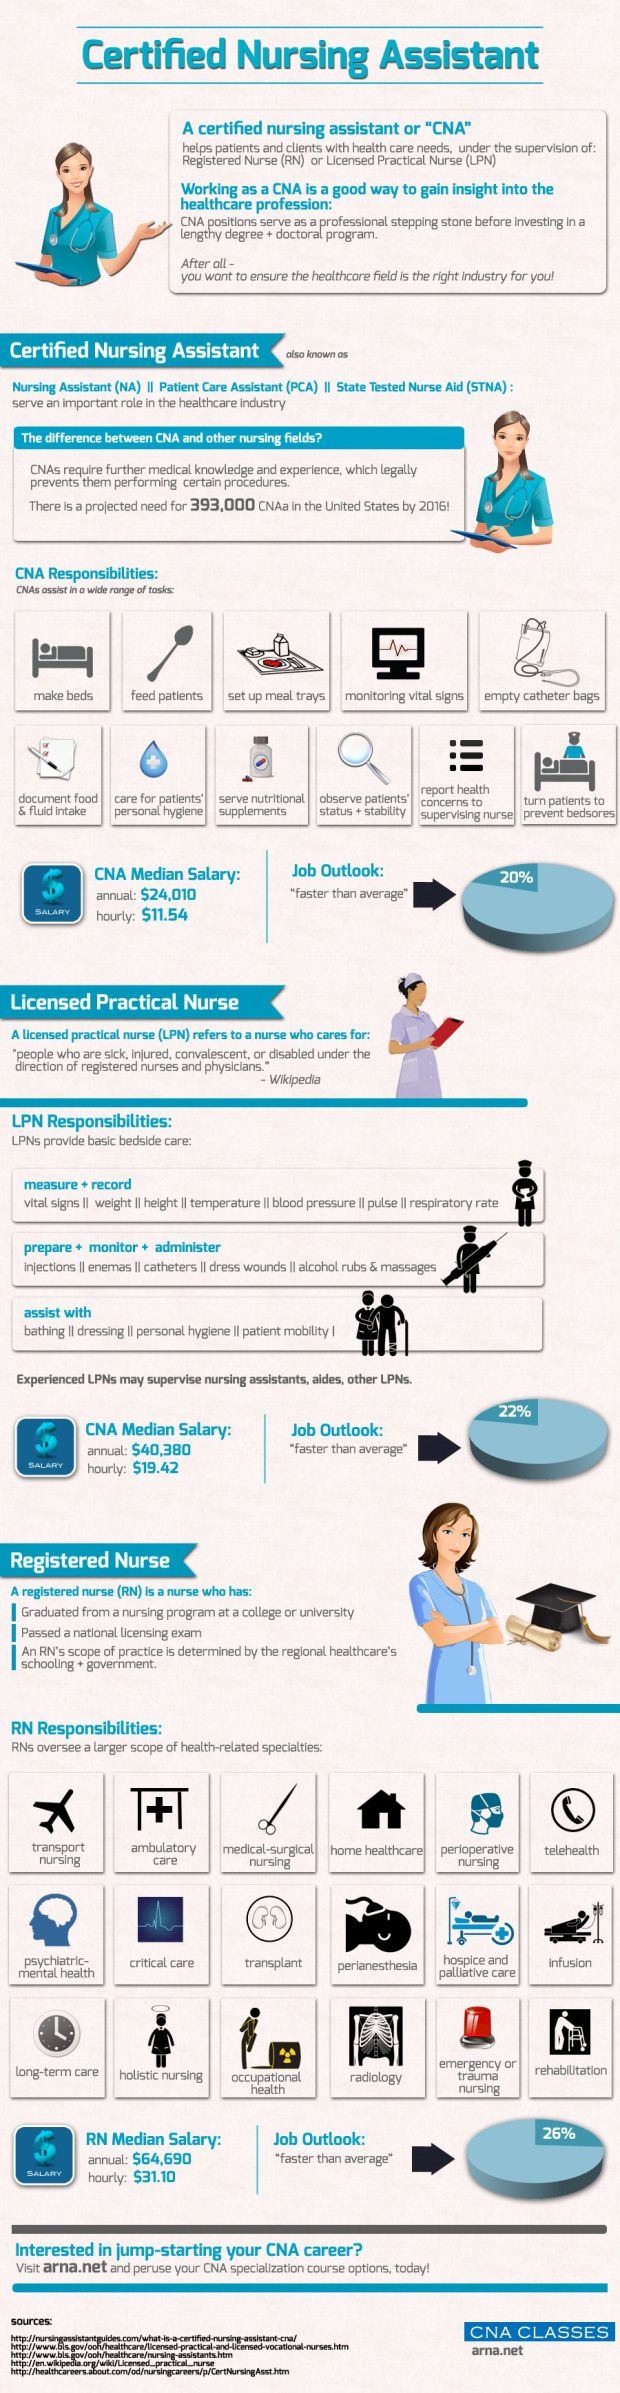 educational infographic data visualisation a great cna certified nursing assistant educational infographic infographic description a. Resume Example. Resume CV Cover Letter